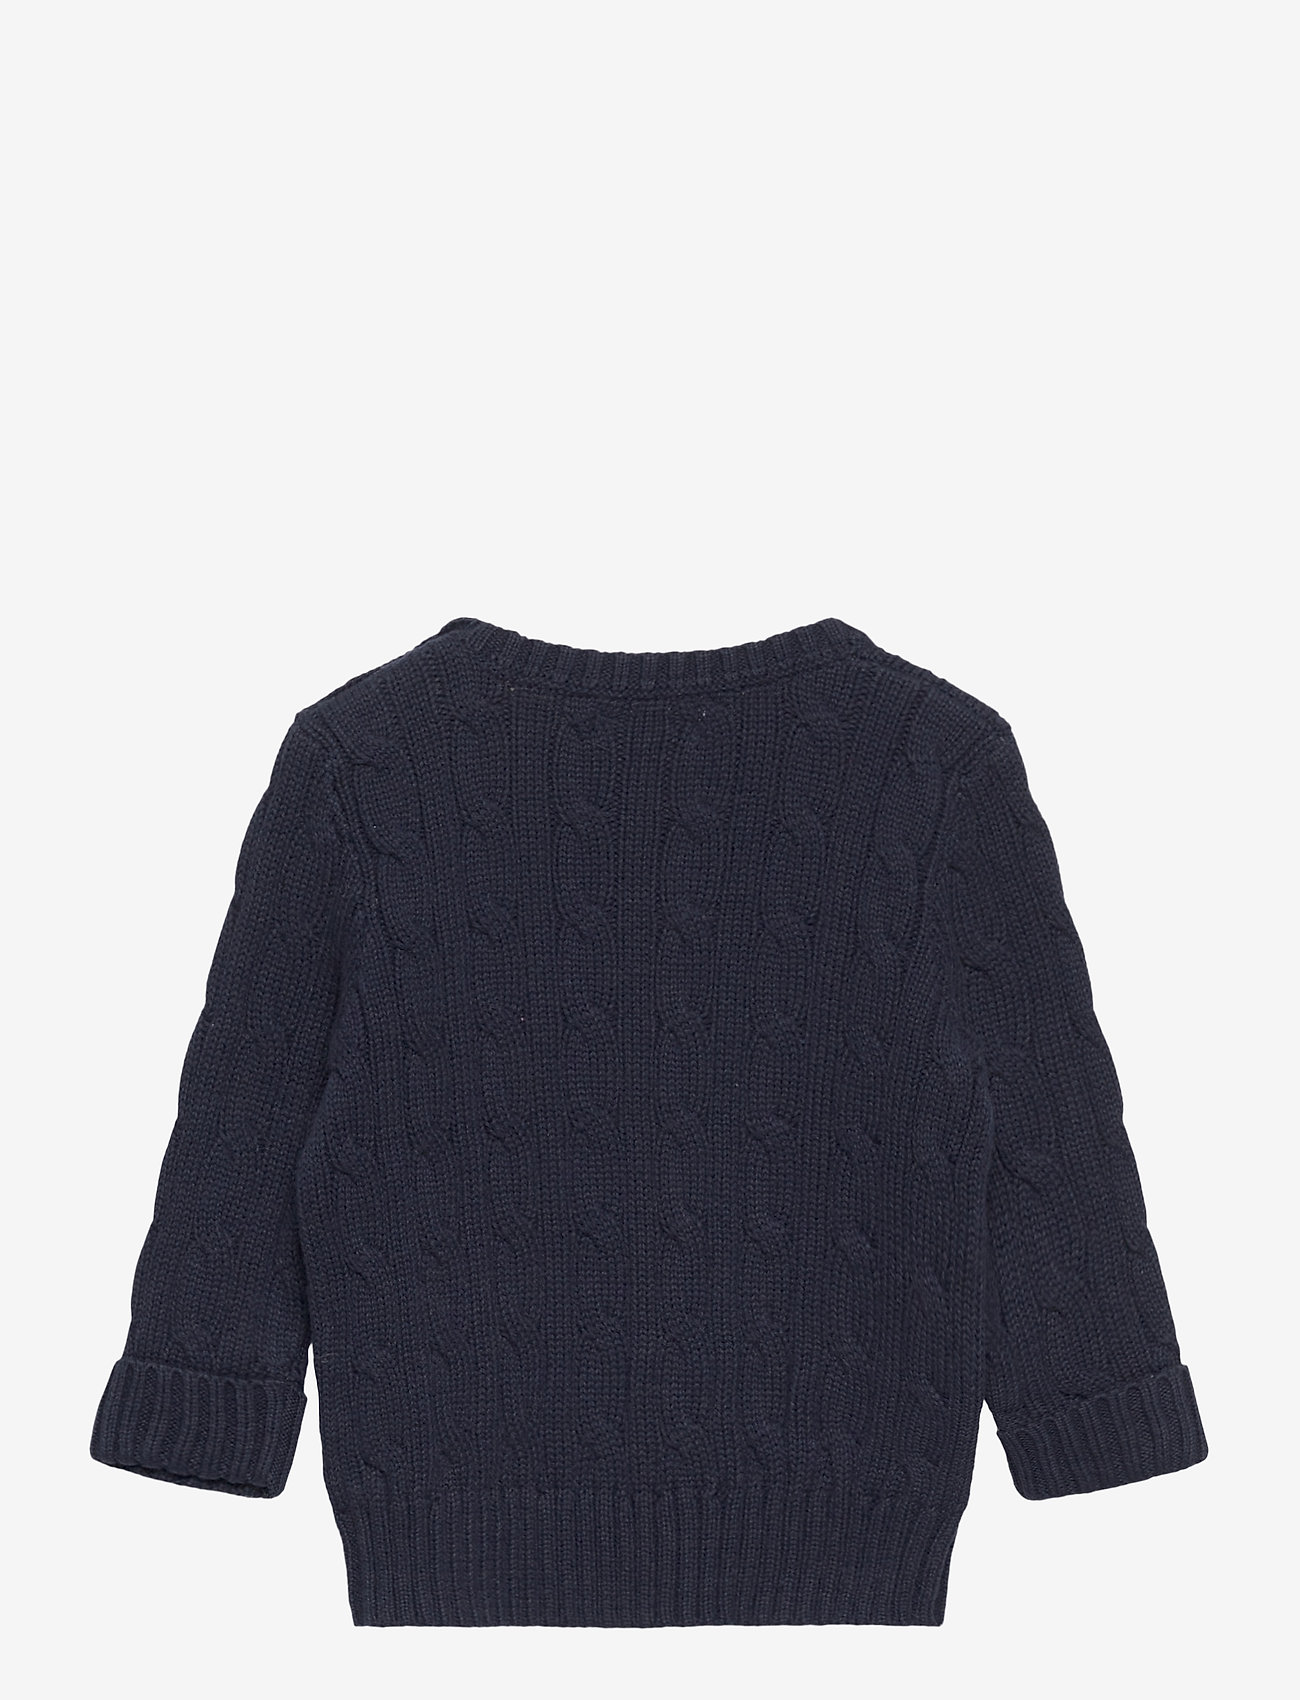 Ralph Lauren Baby - Cable-Knit Cotton Sweater - strik - rl navy - 1